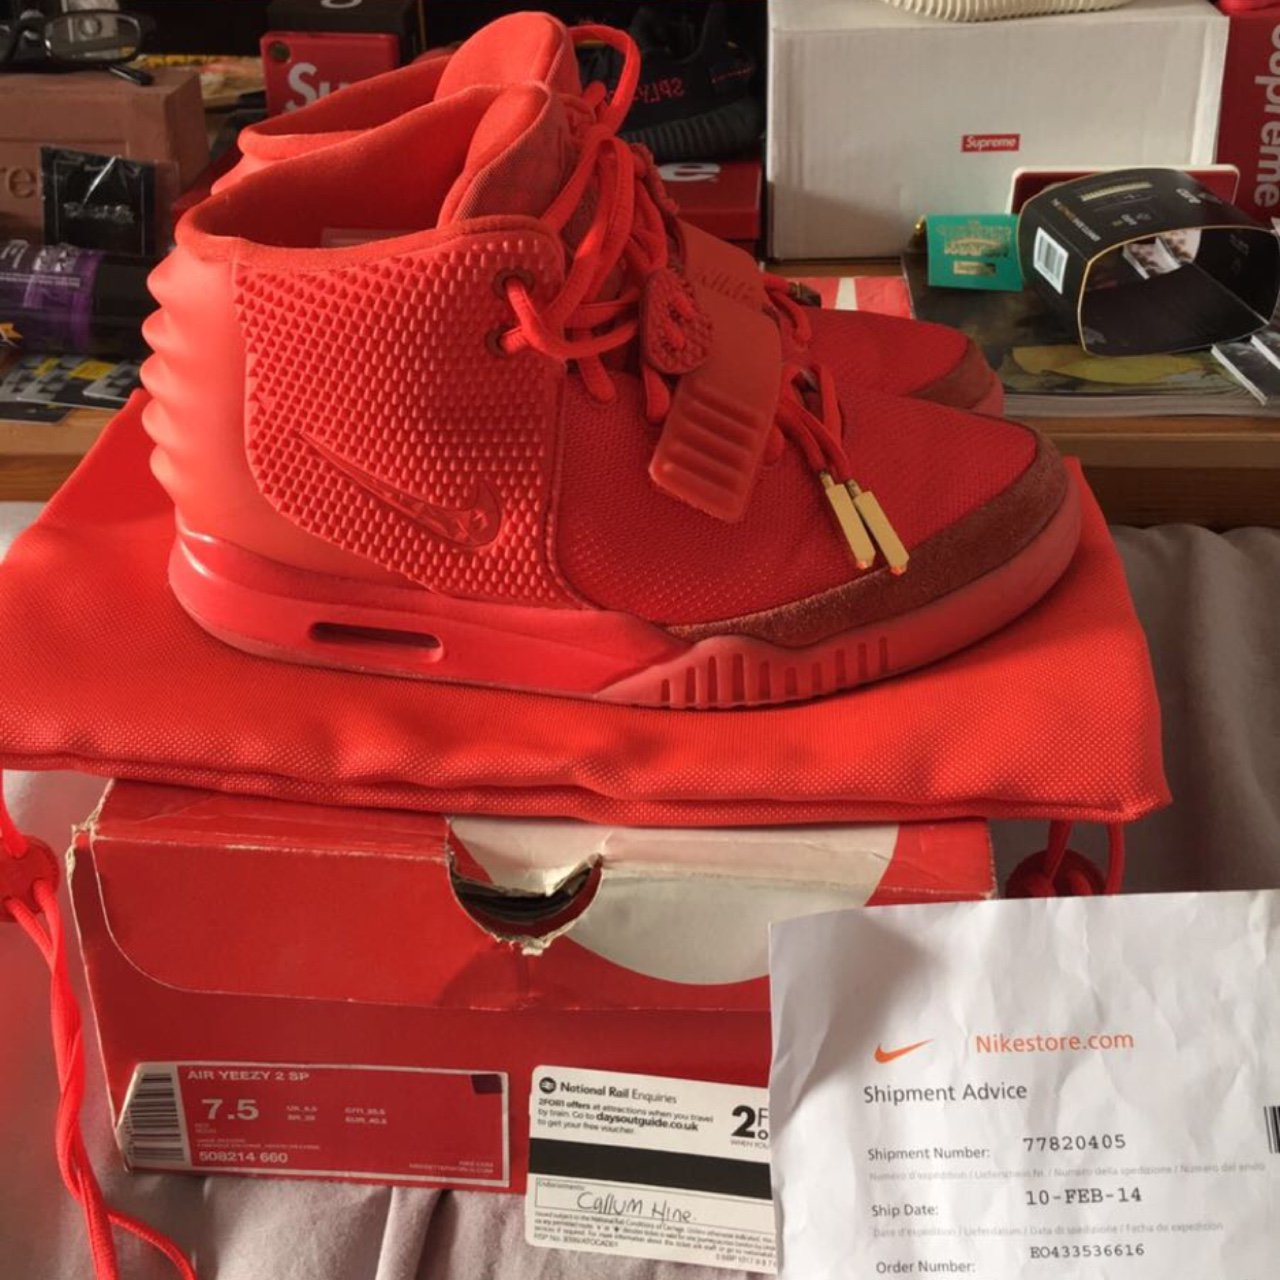 4206bec25 Nike Air Yeezy 2 Red October uk 6.5 8.5 10 just a little on - Depop